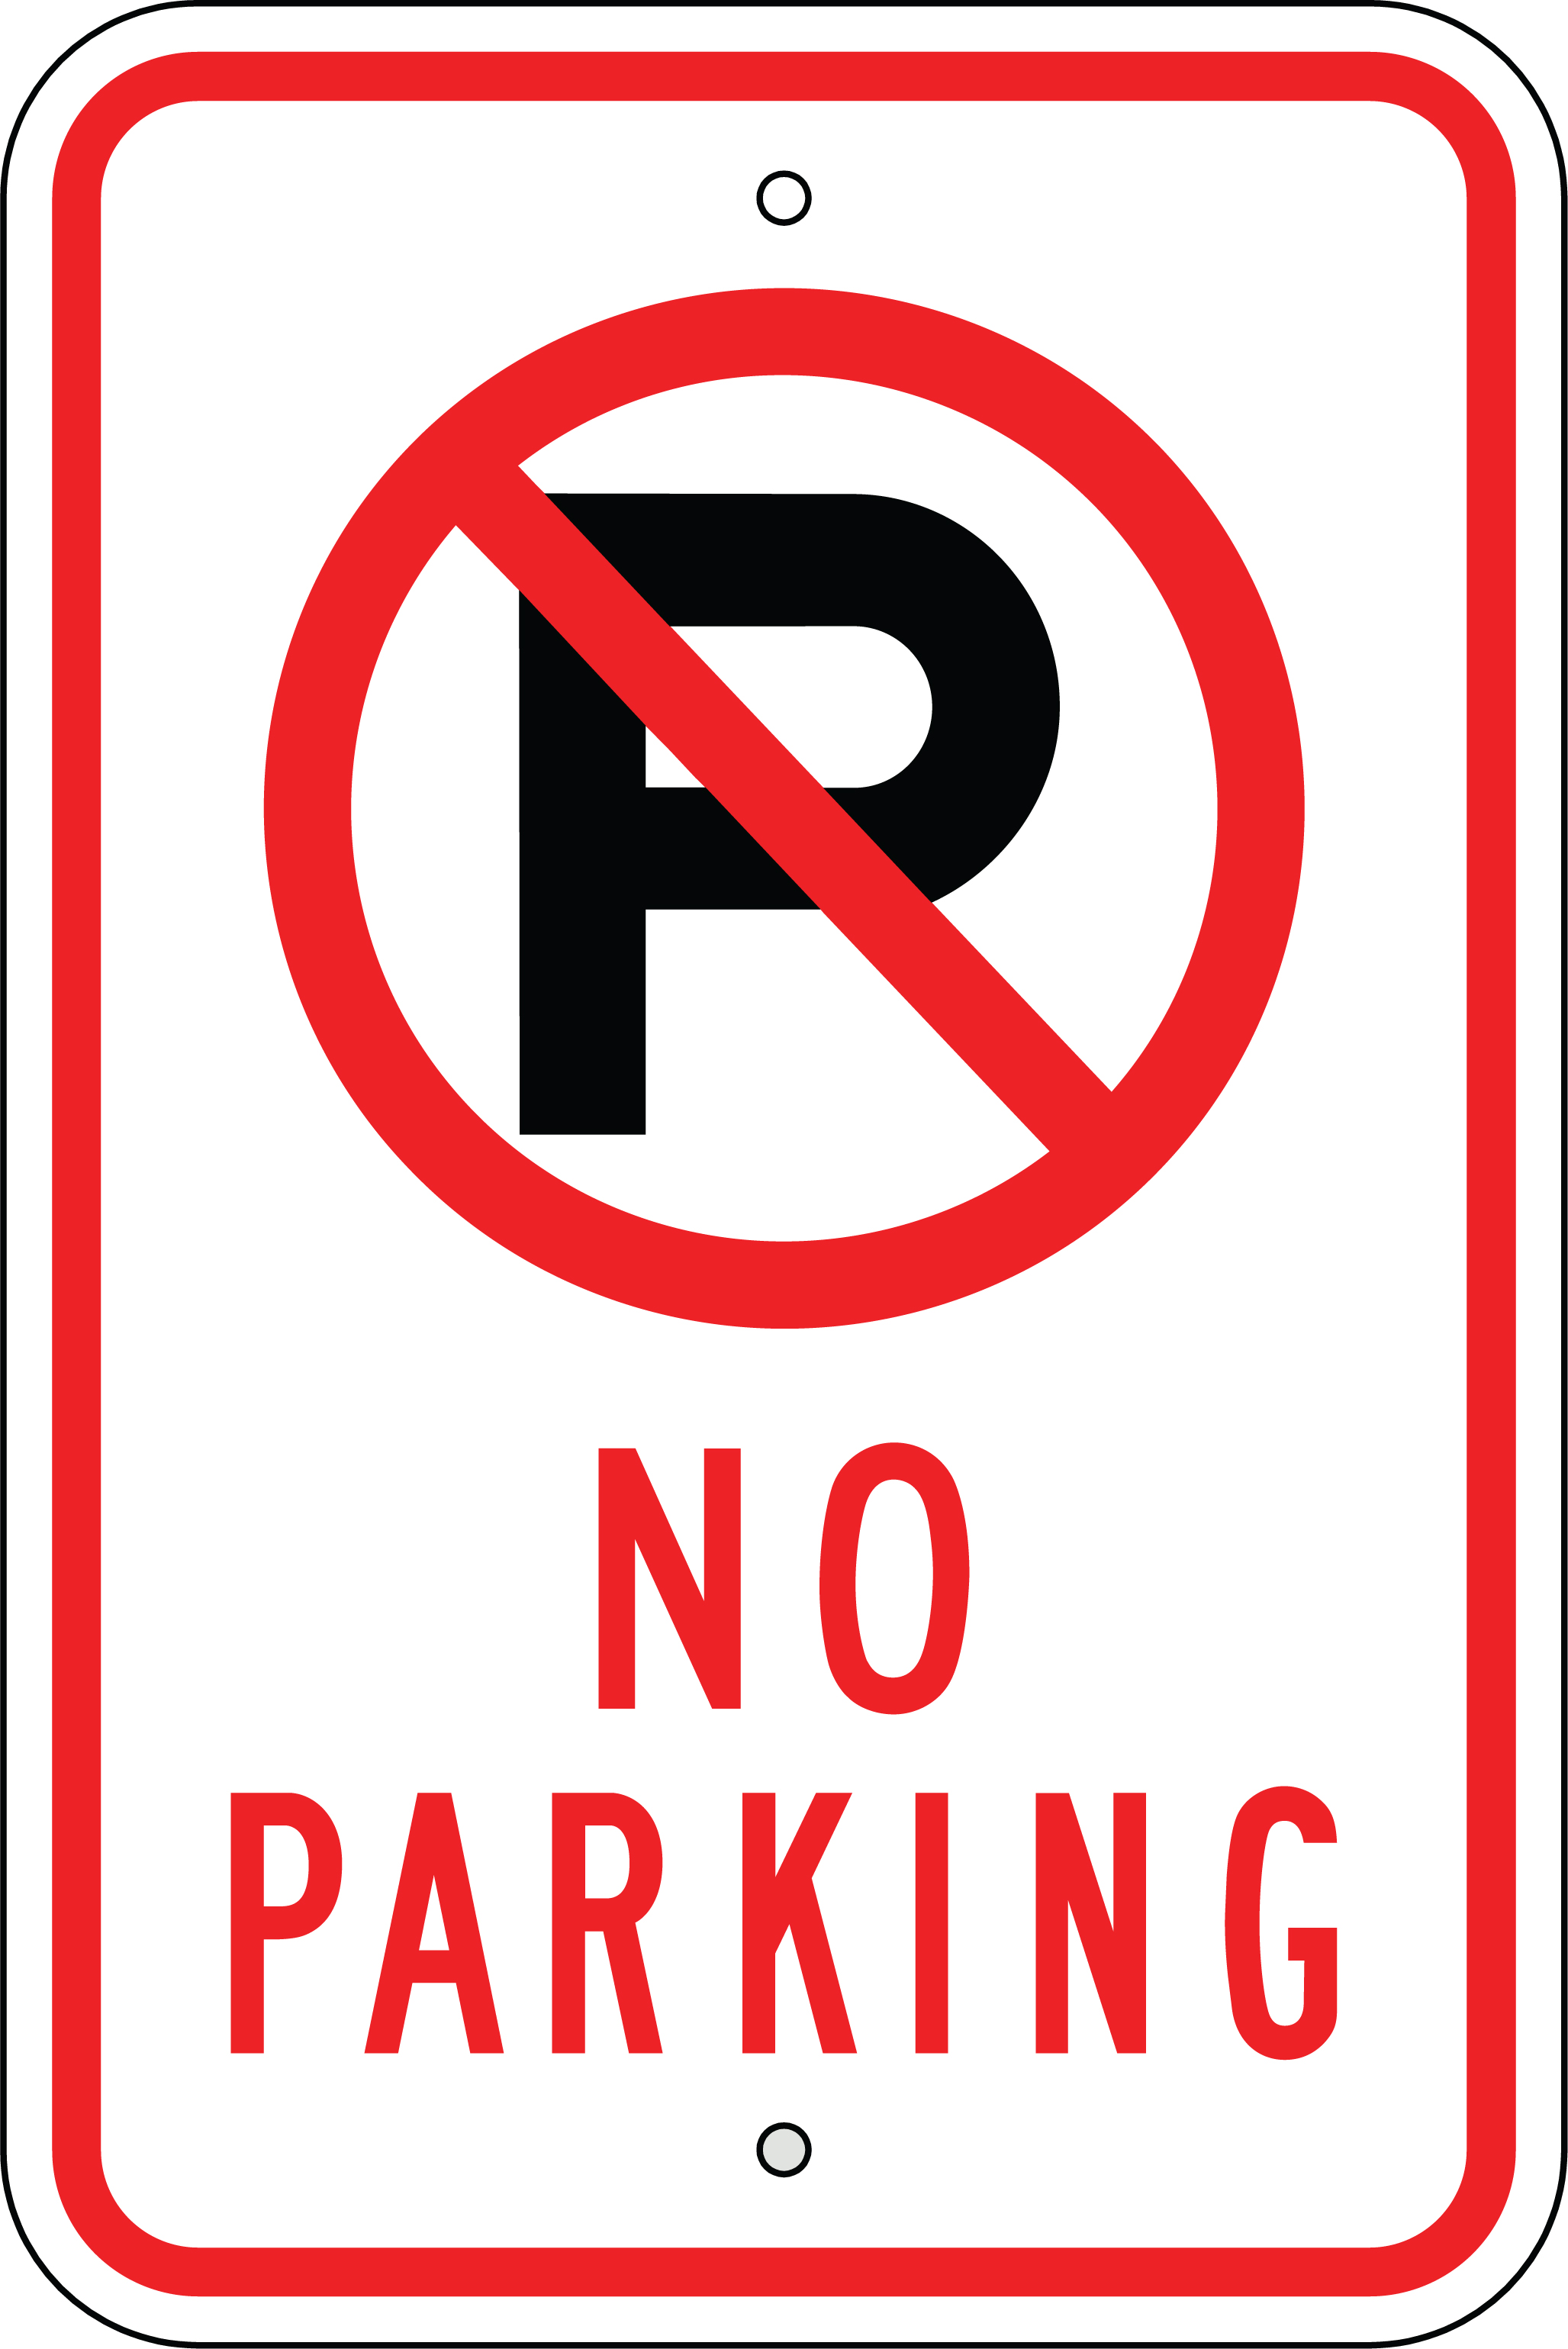 No Parking Sign Clipart - Clipart Kid